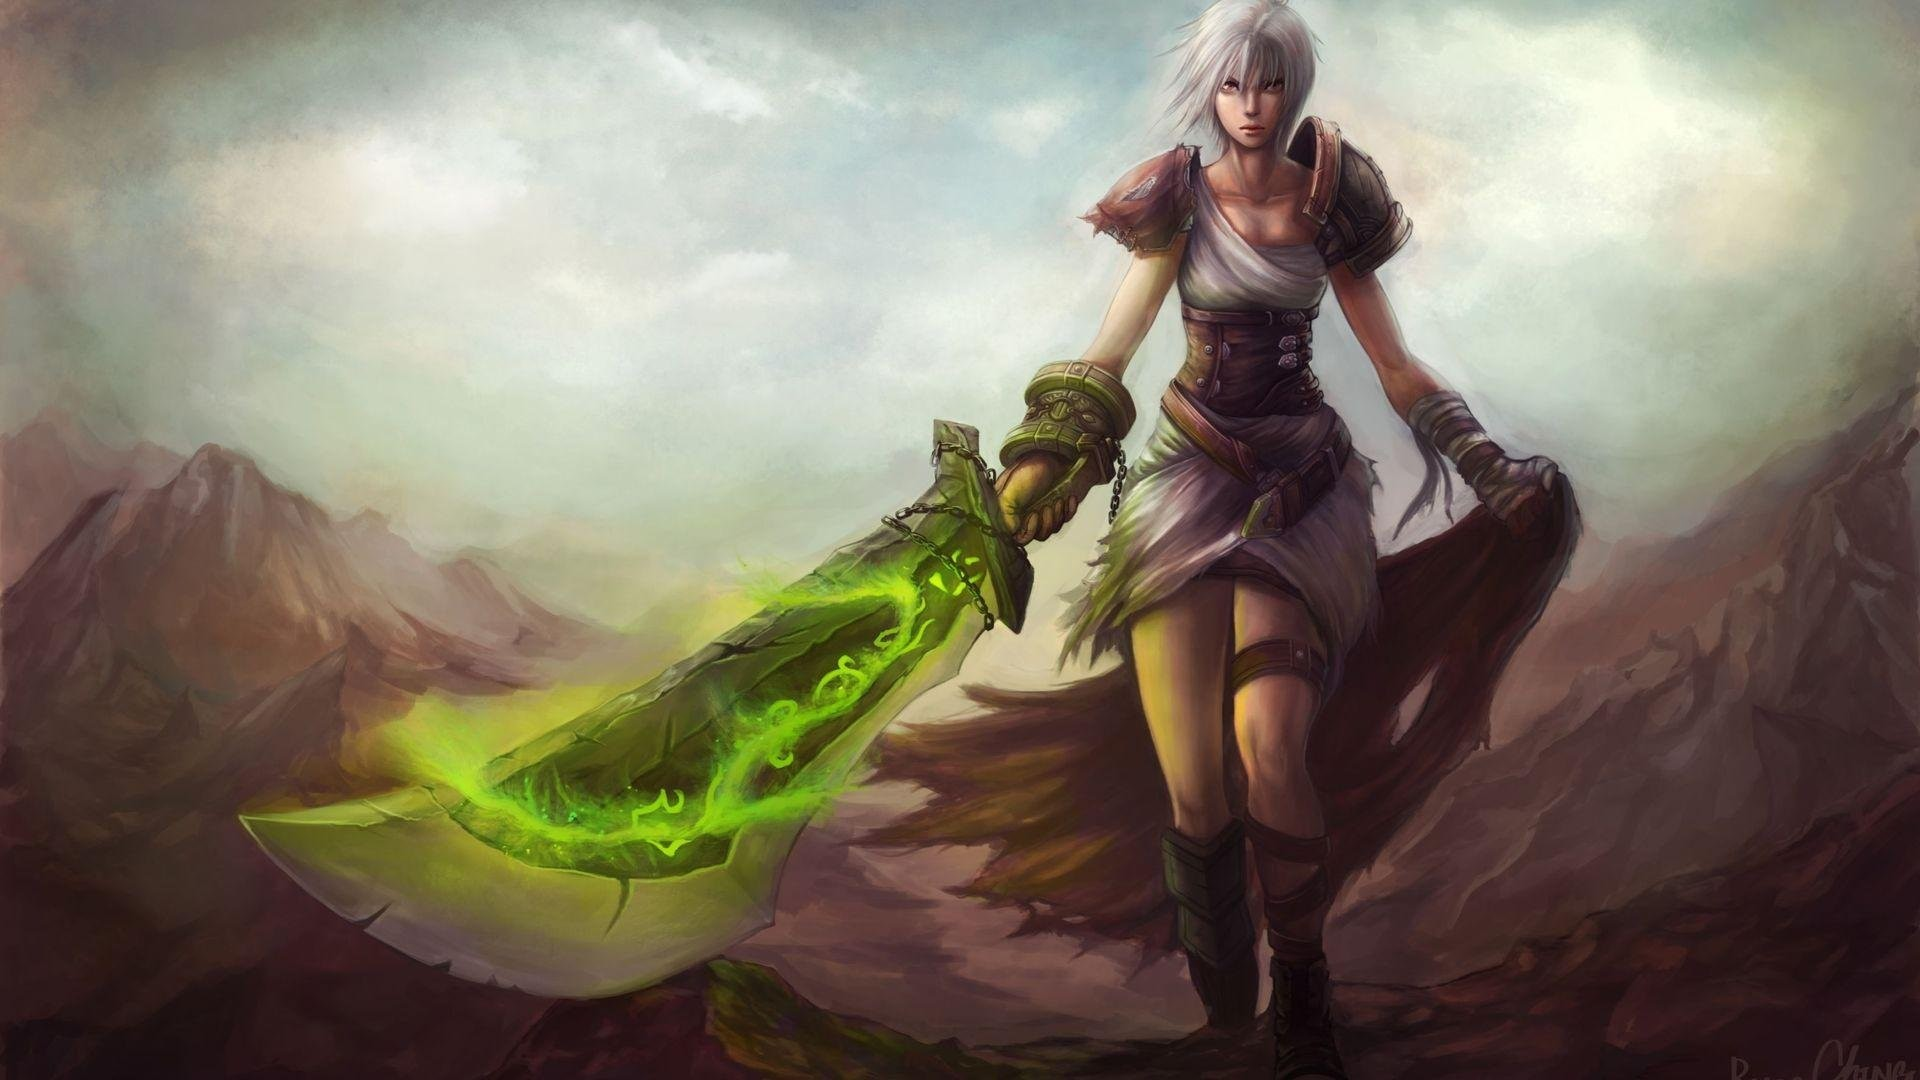 League Of Legends Riven 512806. SHARE. TAGS: Warrior Anime